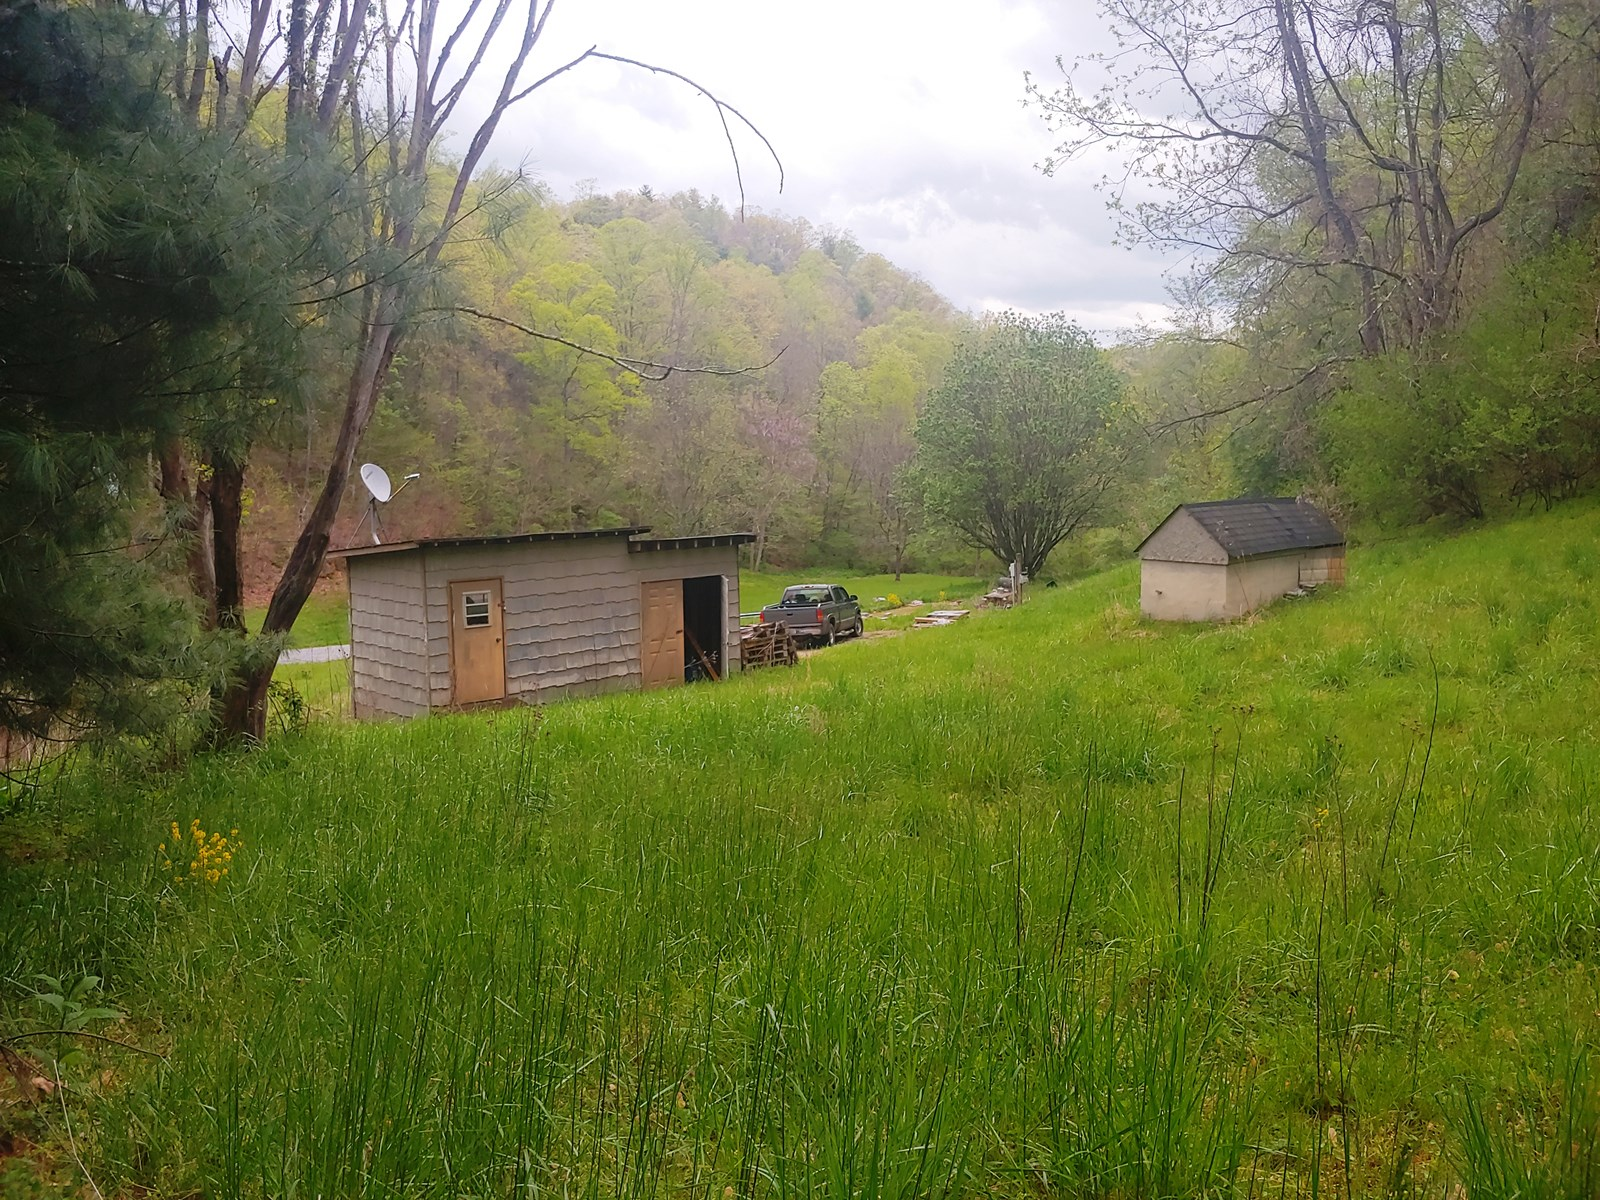 Secluded Home Site for Sale in Shawsville VA